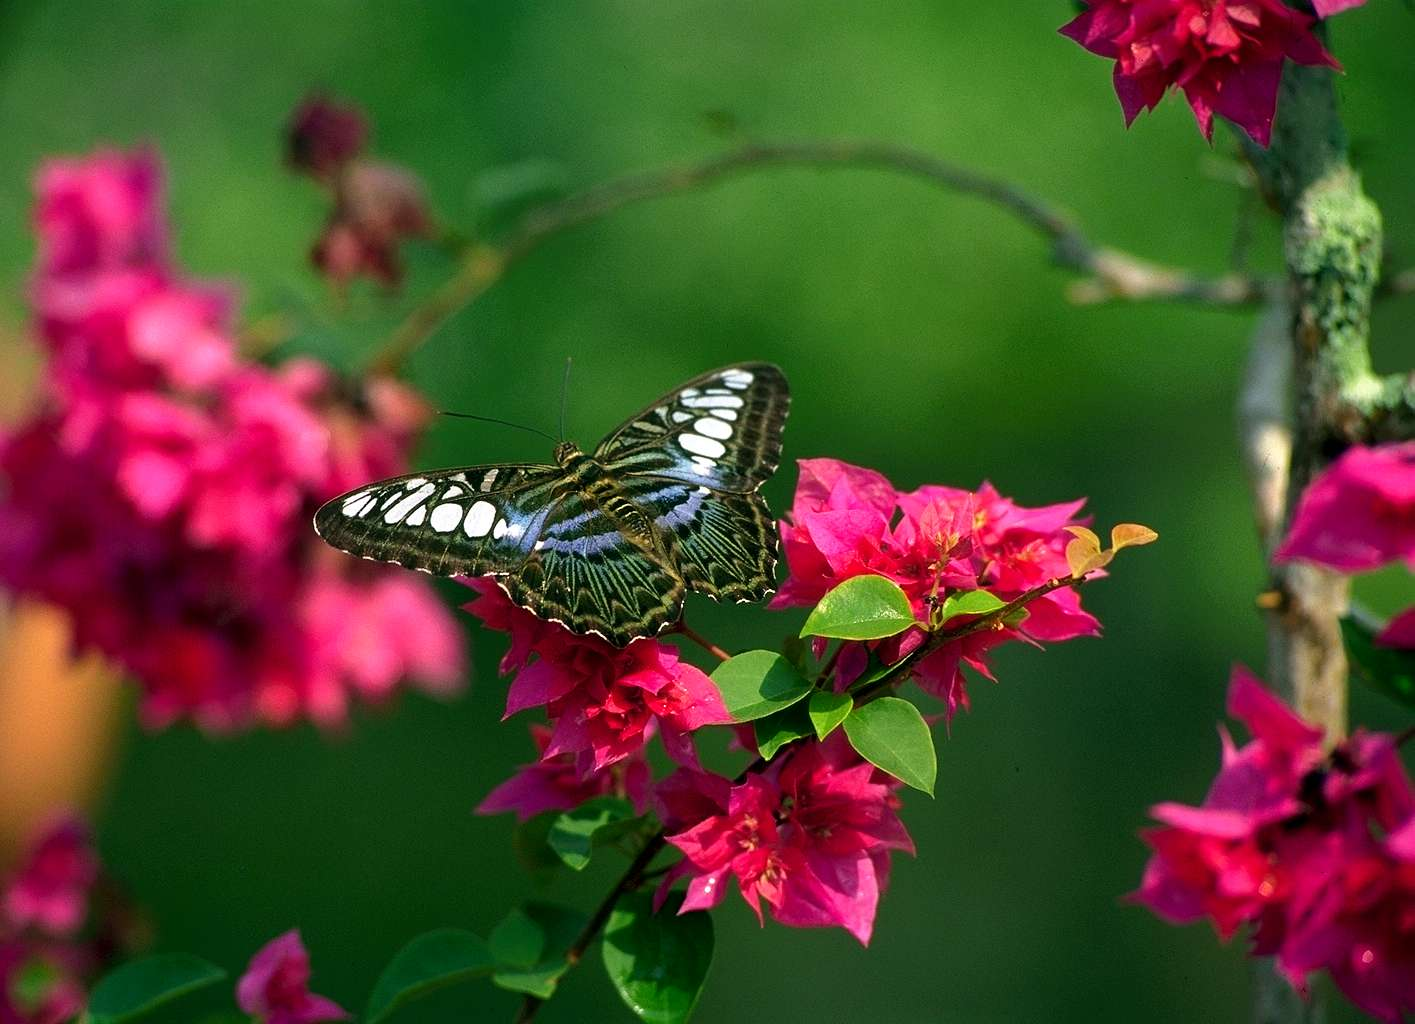 flower lovers Flowers butterfly natural beauty desktop wallpapers 1415x1024